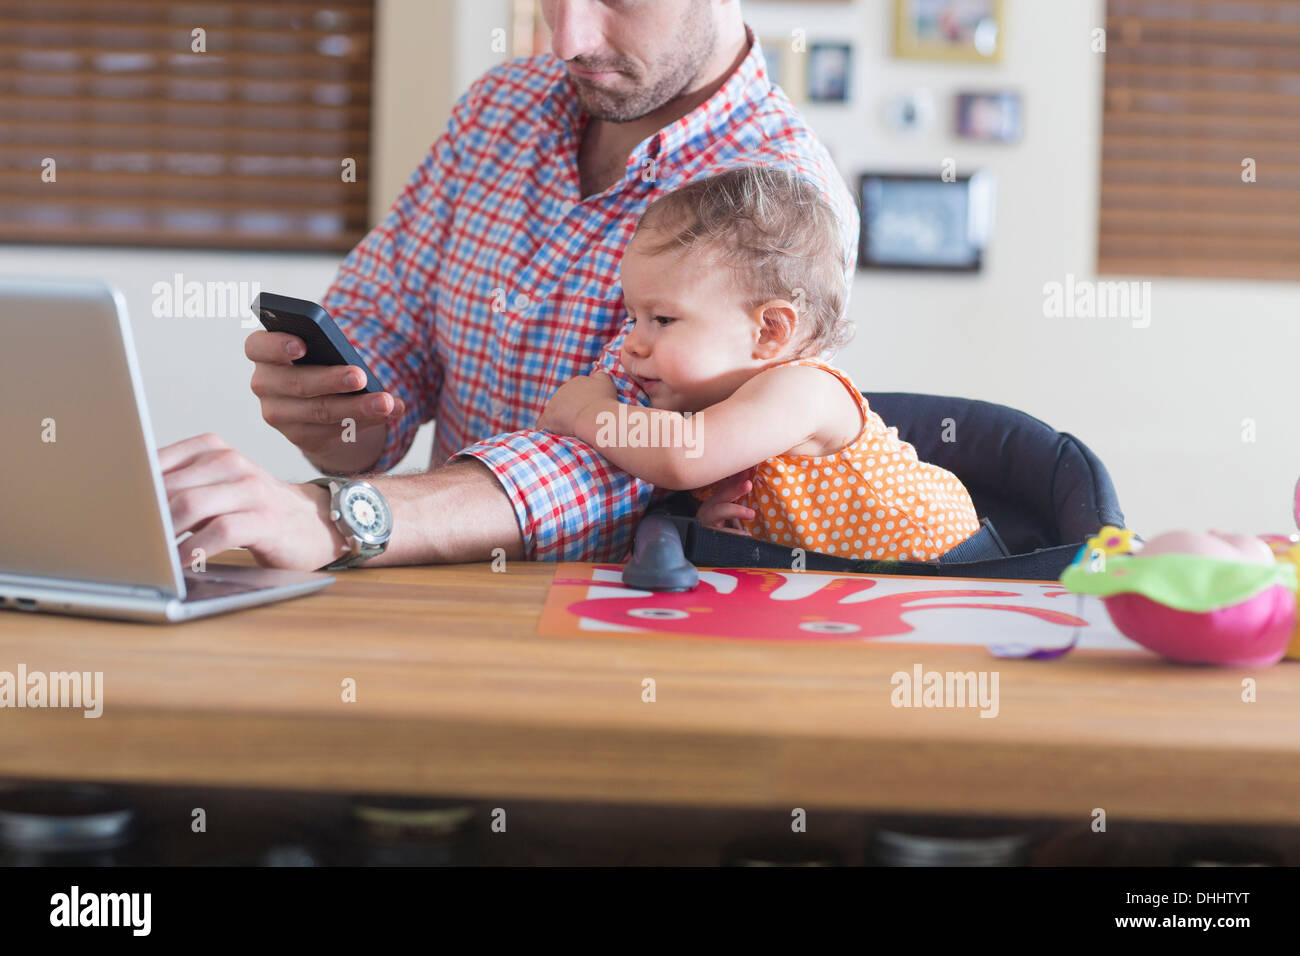 Man working at kitchen counter with baby sitting beside - Stock Image